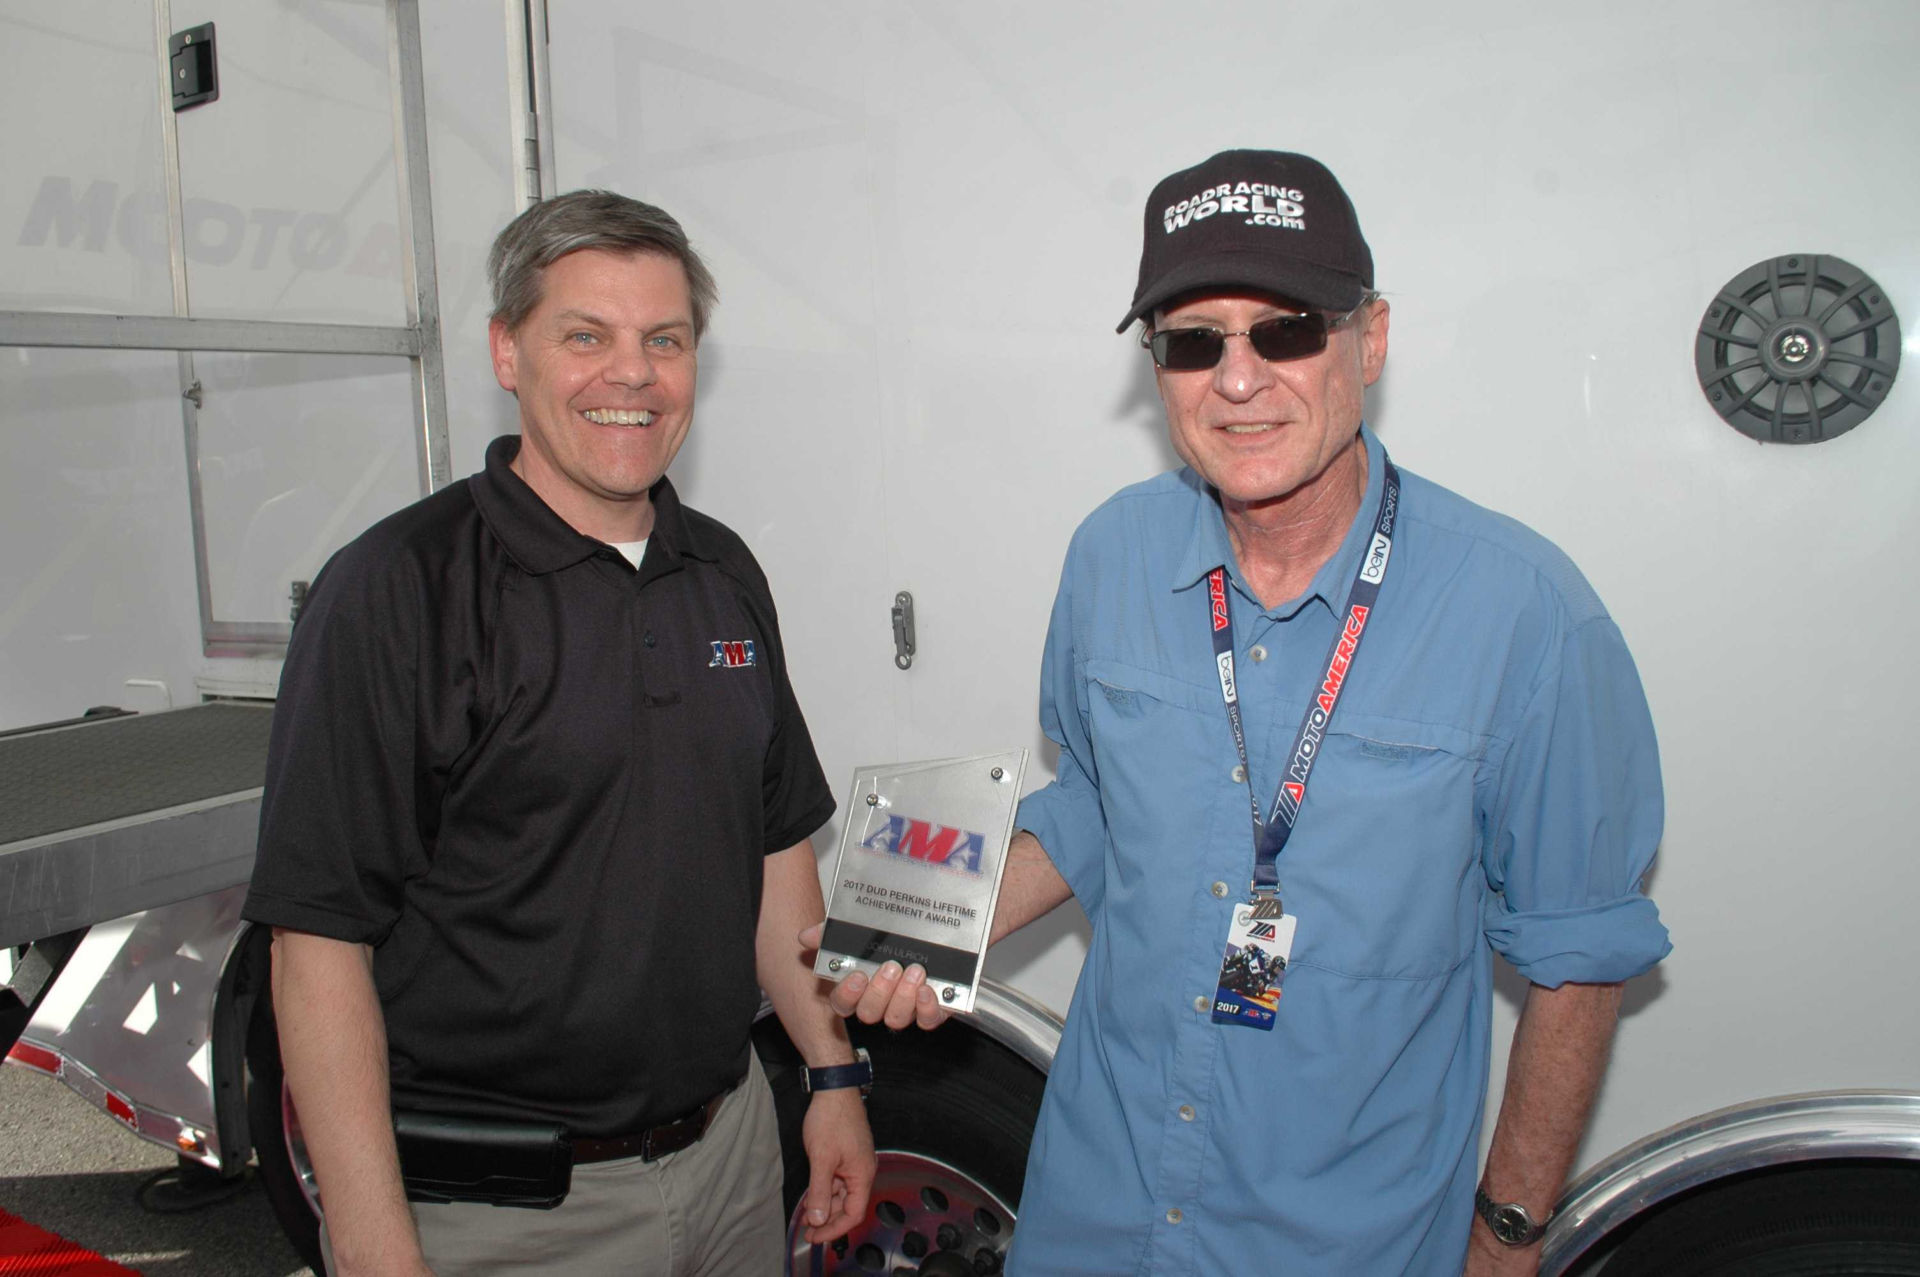 John Ulrich, a racer, a race team owner and the Founder, Vice President and Editor of Roadracing World & Motorcycle Technology, was presented with the AMA Dud Perkins Lifetime Achievement Award by AMA President and CEO Rob Dingman in a ceremony held in the MotoAmerica paddock Friday, April 21, 2017, at Circuit of The Americas. Photo by David Swarts.